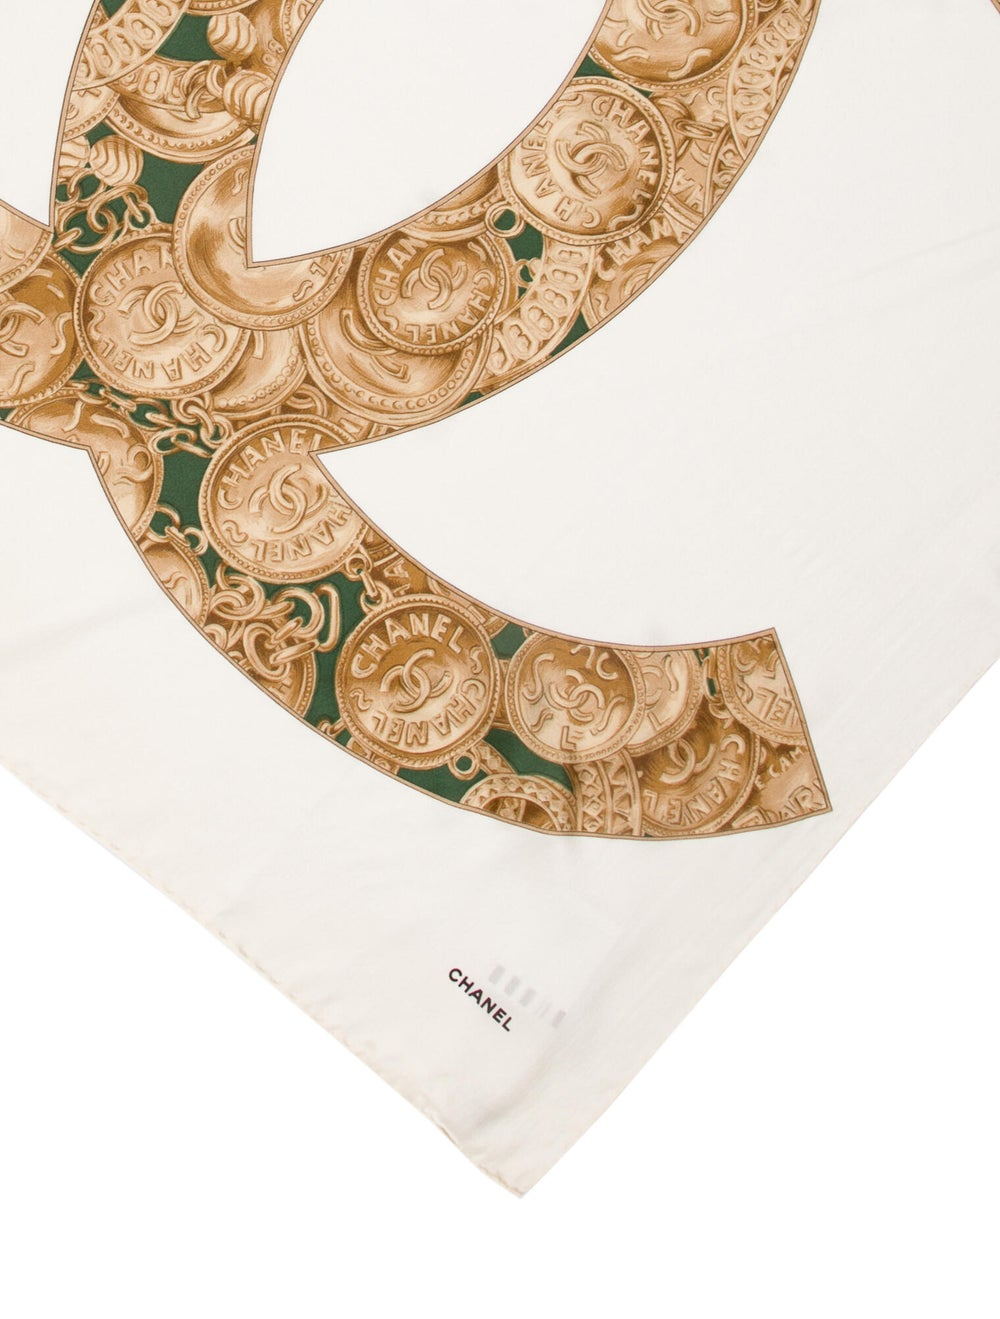 Chanel Coin Silk Scarf - image 2